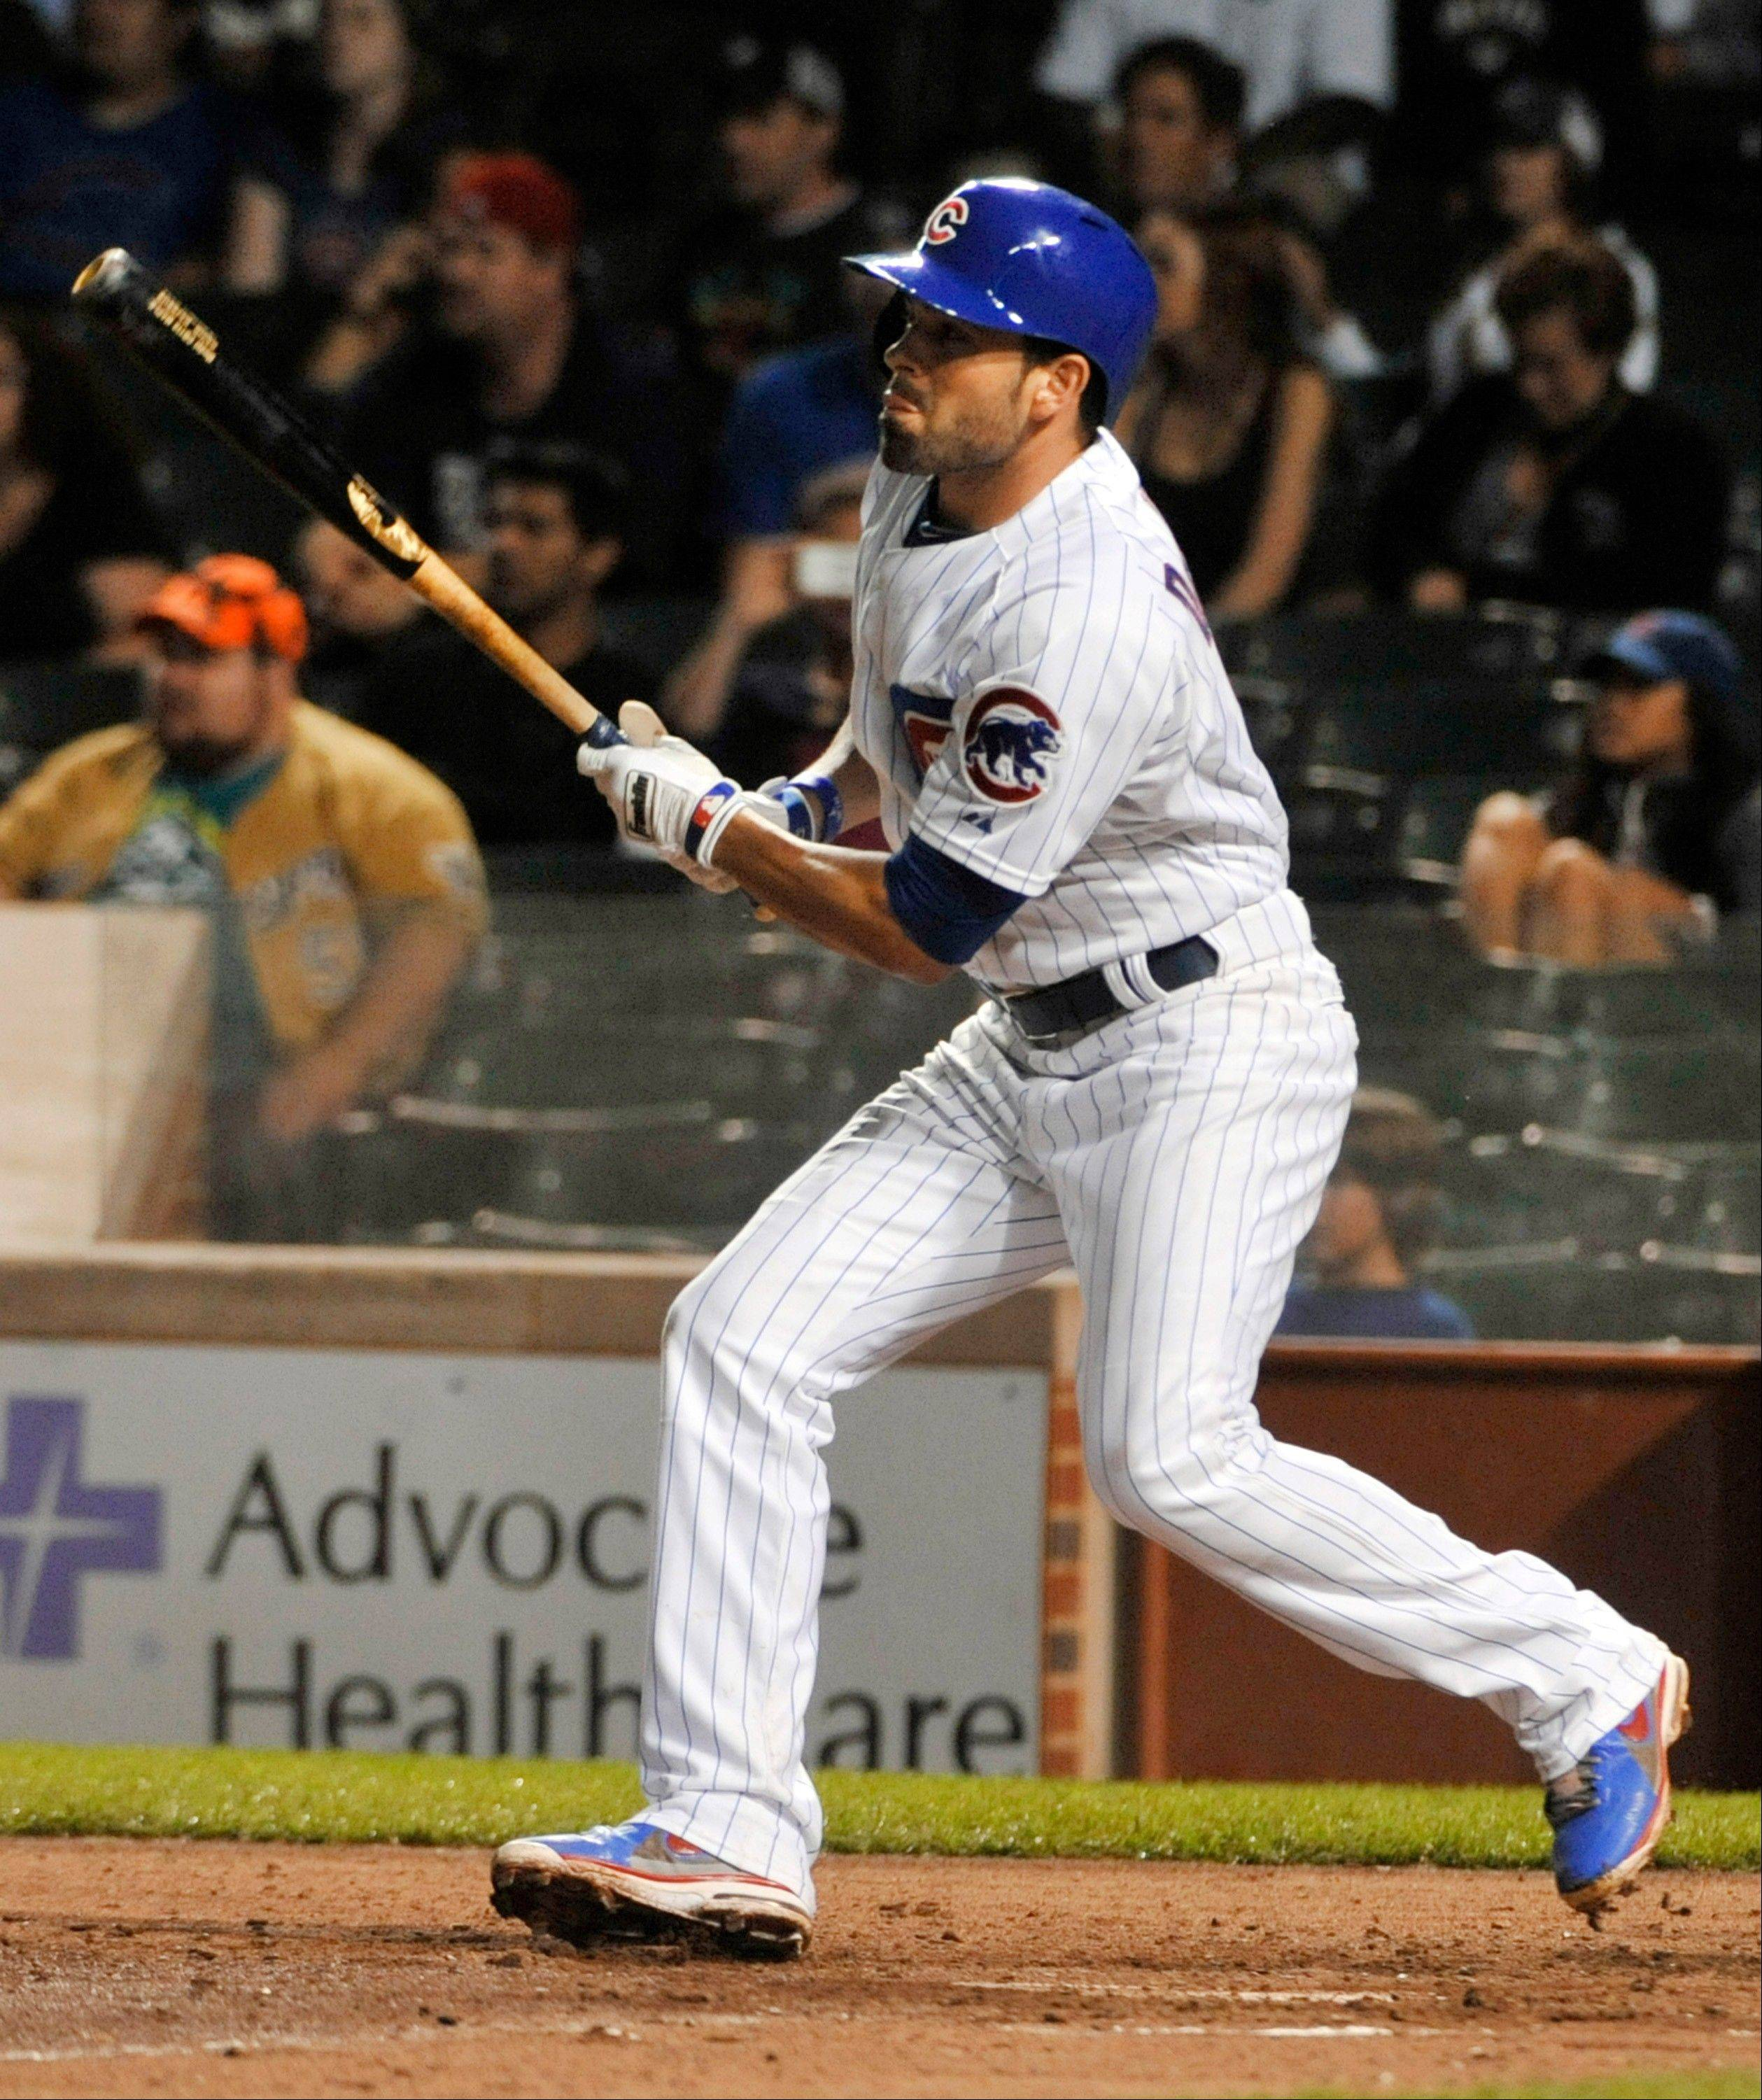 The Cubs' David DeJesus watches his two-run single against the Milwaukee Brewers during Wednesday night's game at Wrigley Field. The Cubs won 6-1.